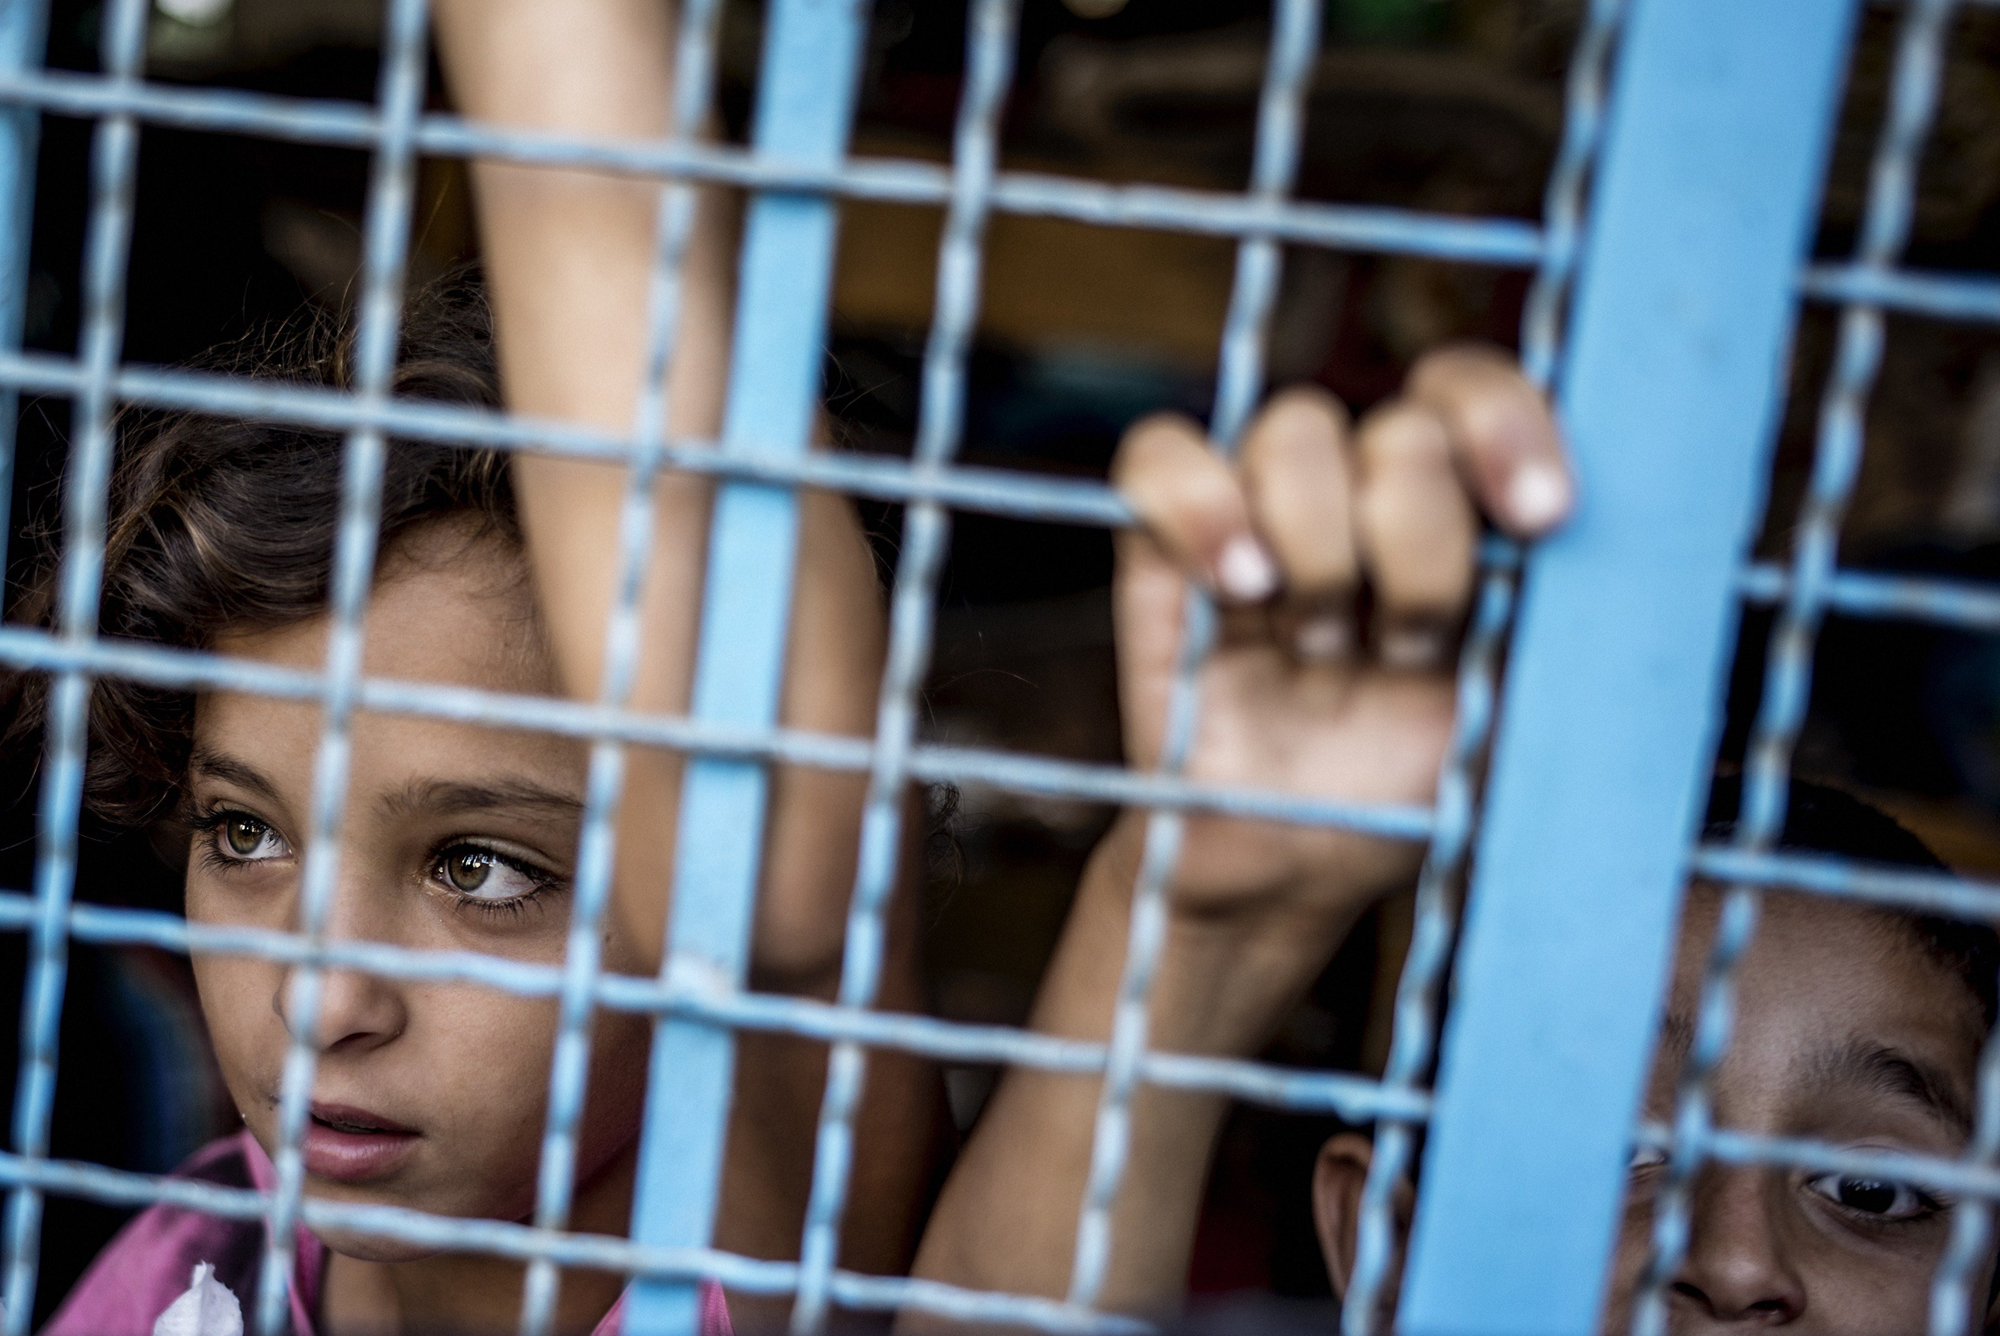 Palestinian girls peers from inside a UN school in Jabalia, north Gaza Strip, on July 25, 2014, where they found shelter after escaping from their home.